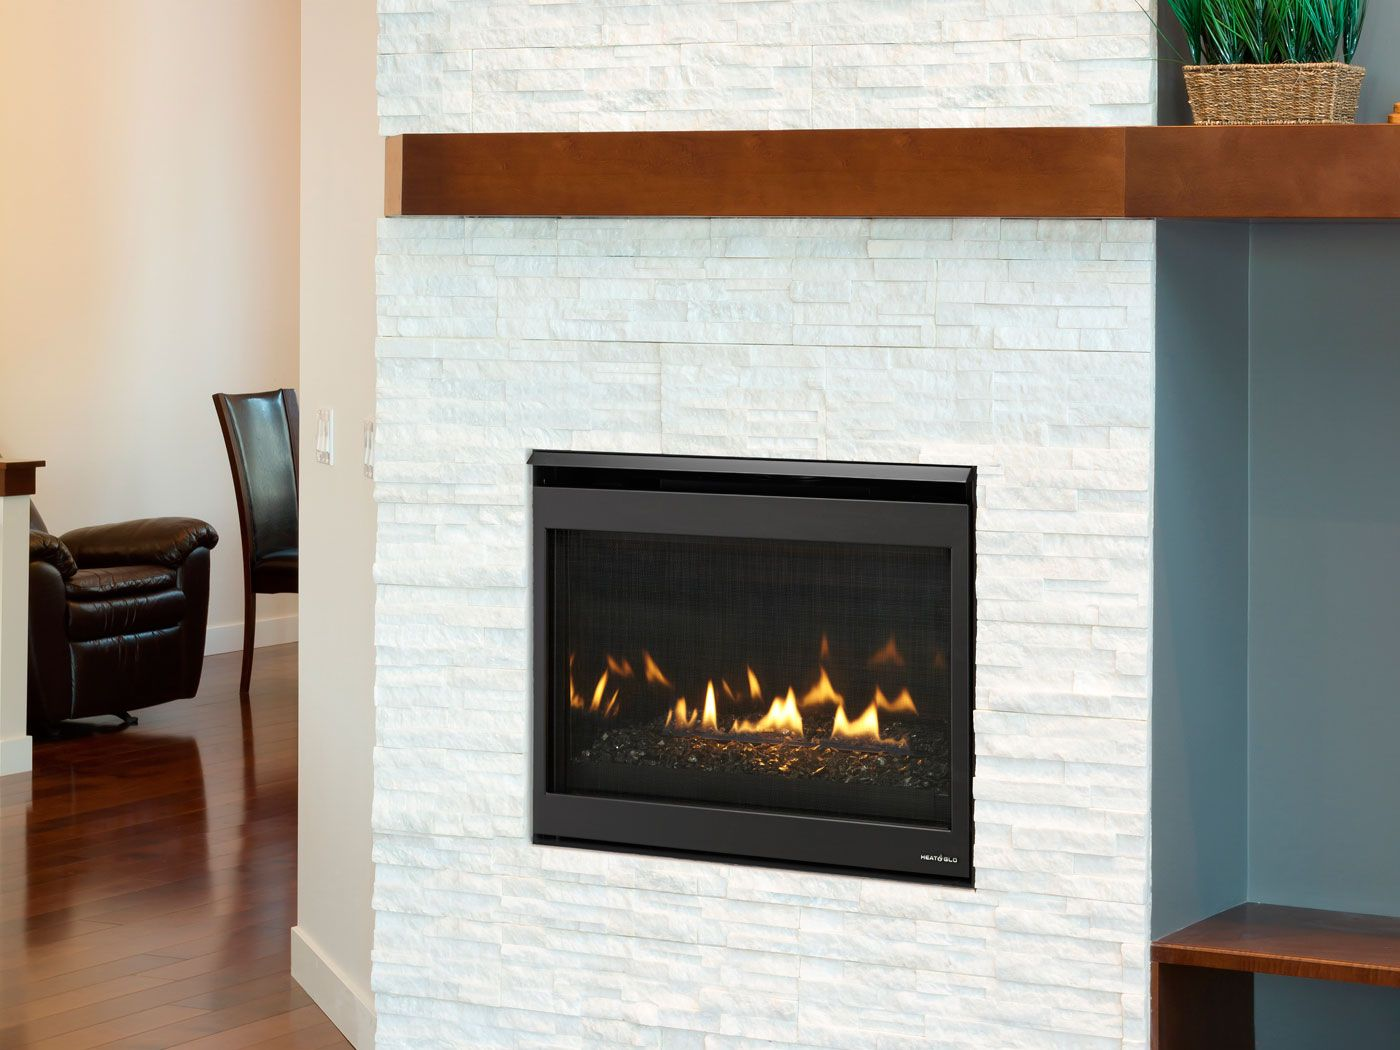 Heat And Glo Sl 550 Fusion Gas Fireplace 1549 Available With